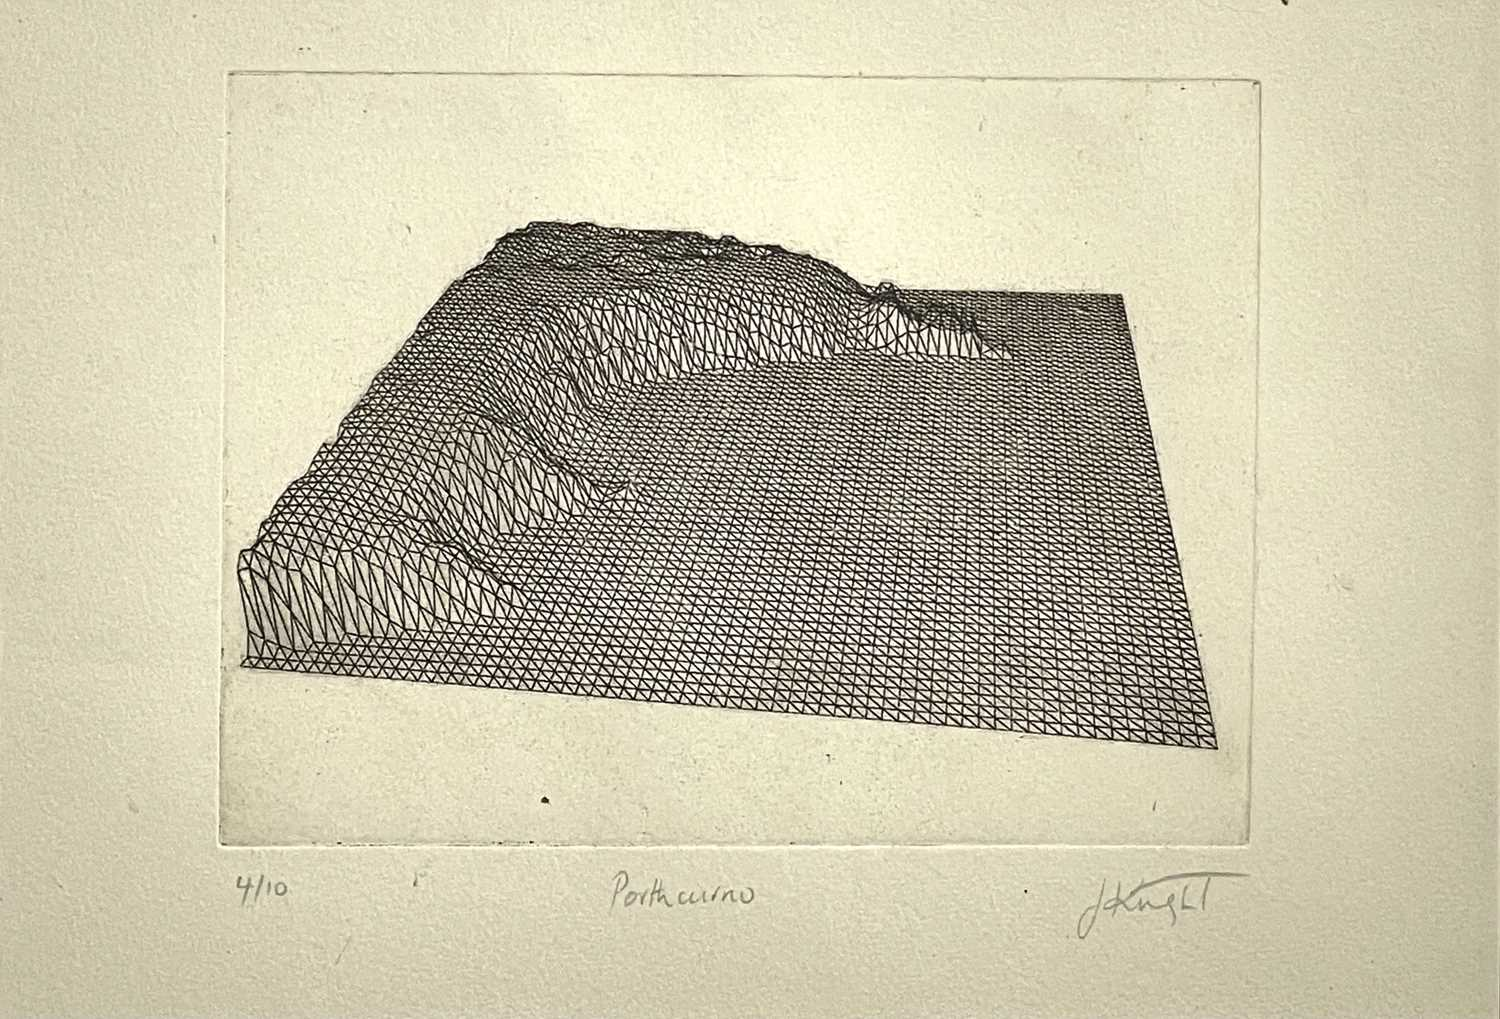 HEADLEY Cornish Mystery VIColoured etching Signed and inscribed 17.5 x 18cmTogether with ' - Image 5 of 9